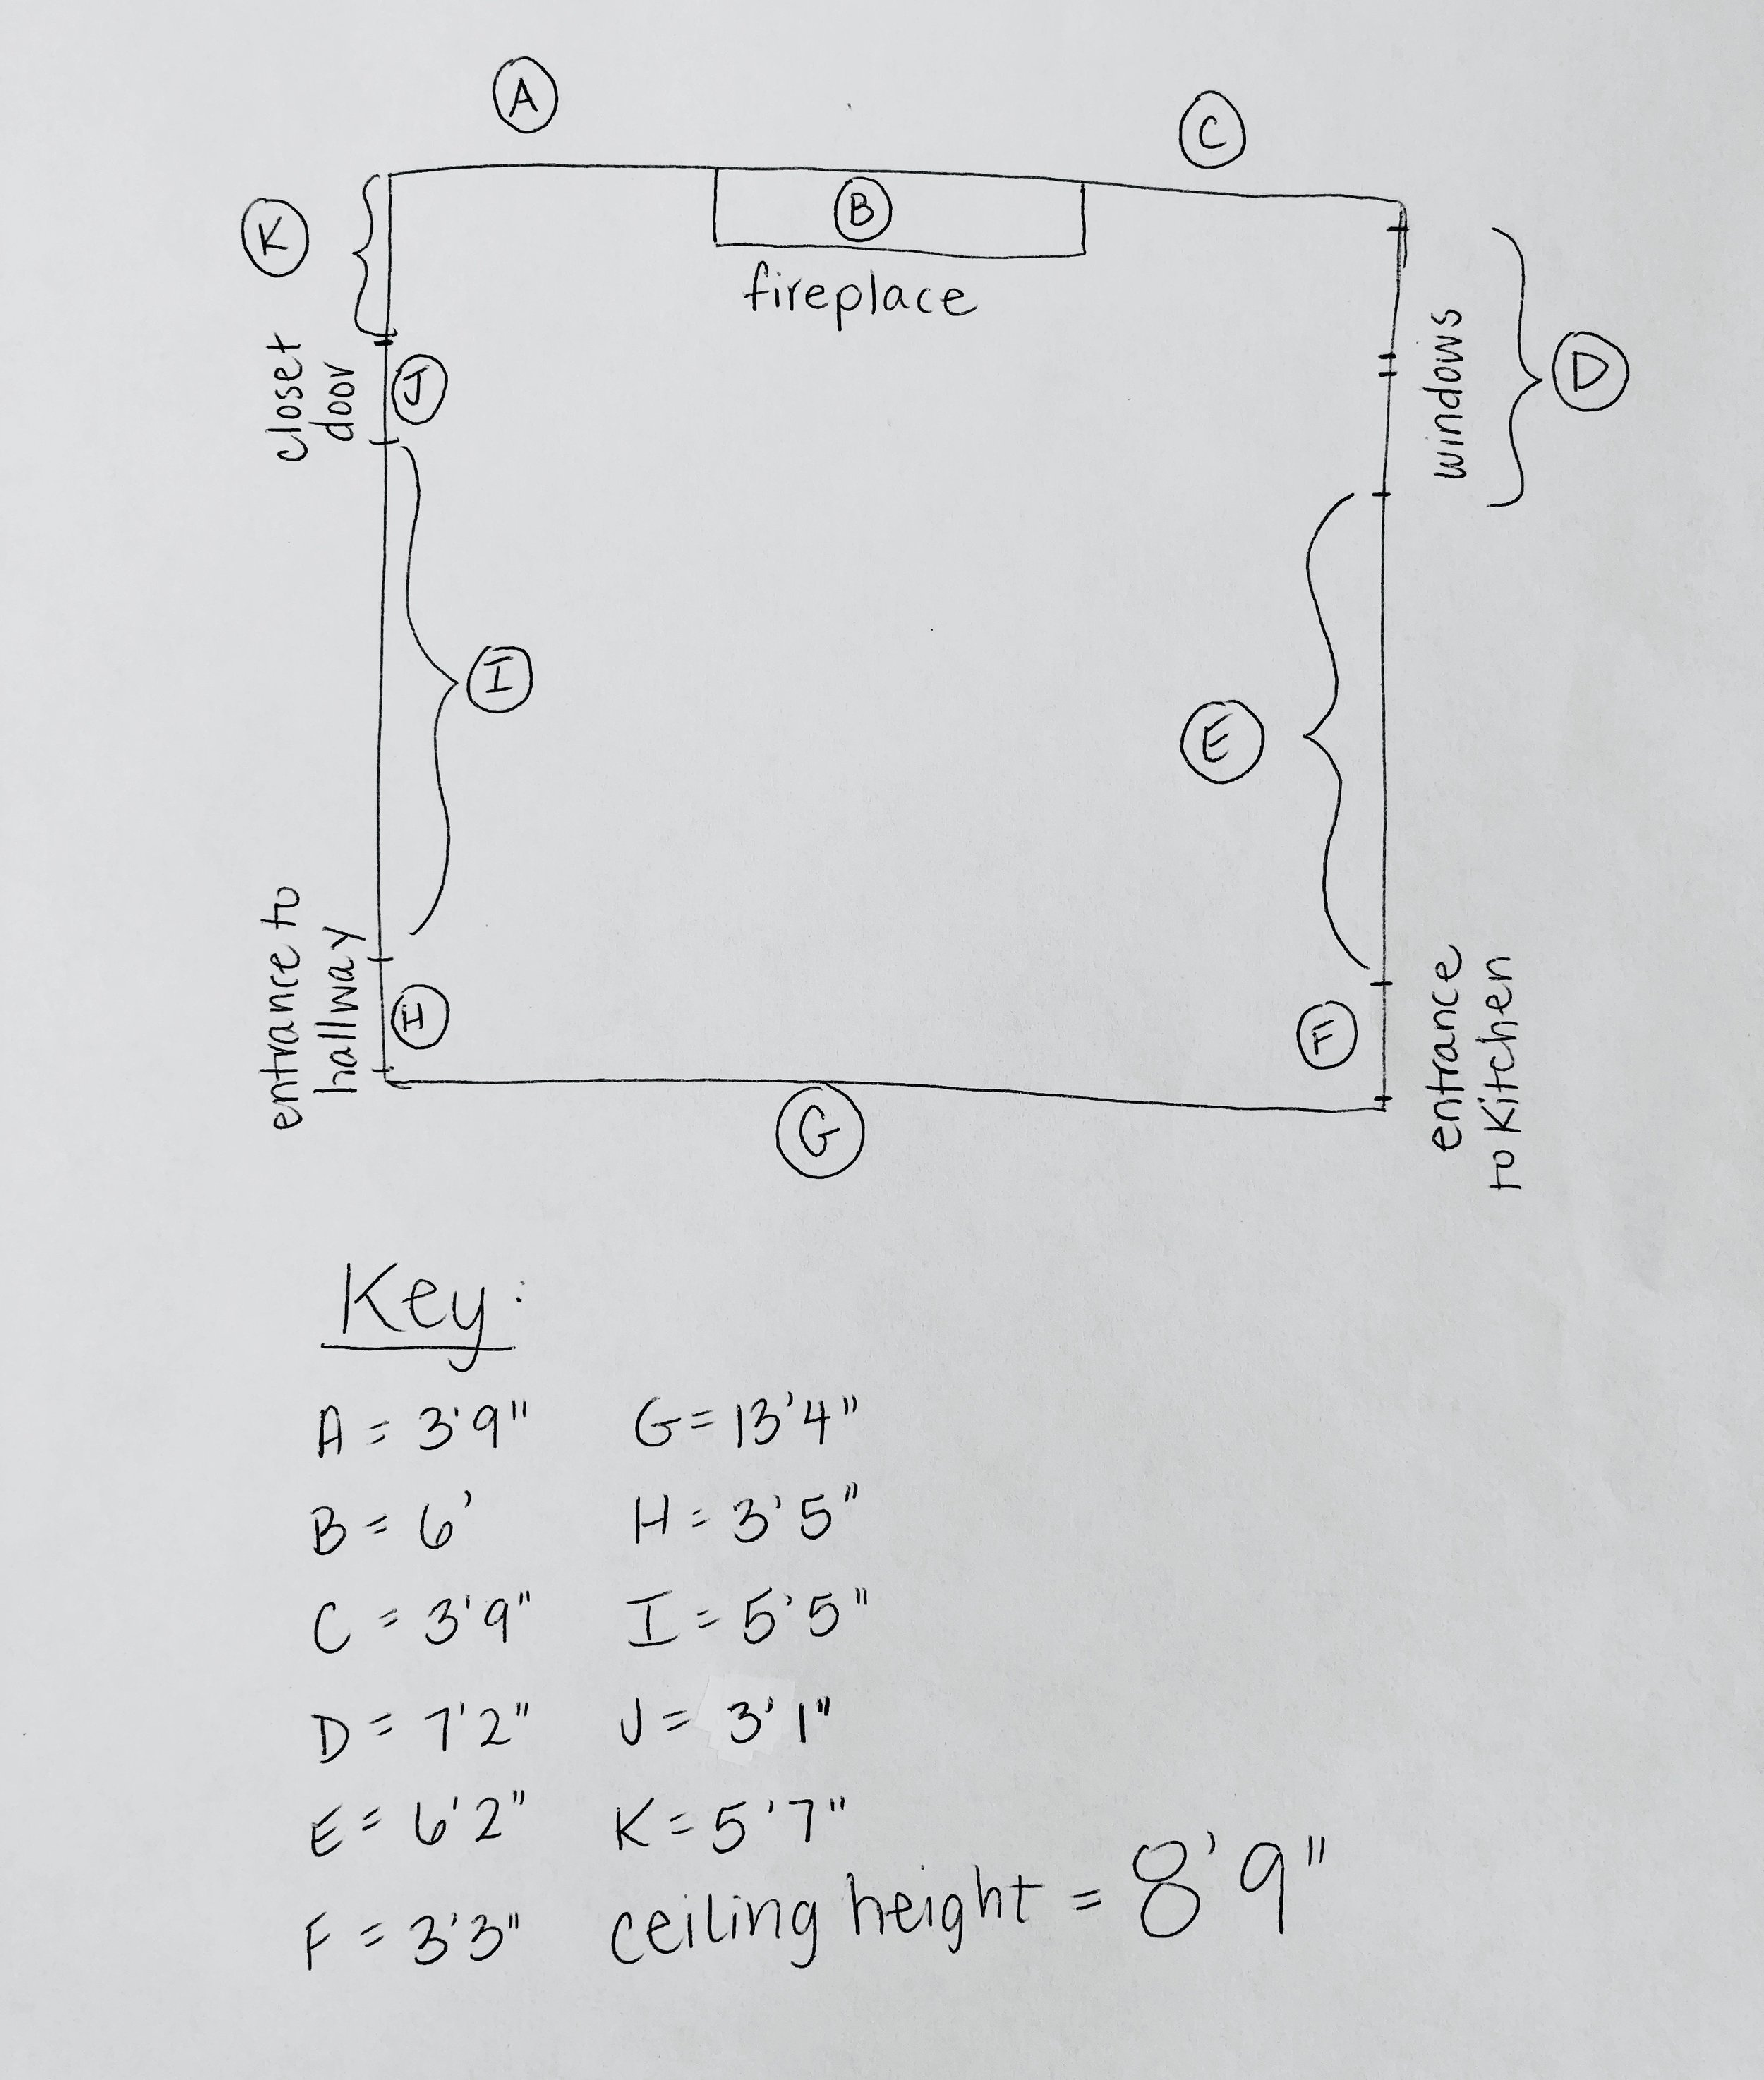 How to draw a floor plan: - 1. Draw a basic room sketch2. Label the lengths of all wall segments, doors, windows, openings, stairs, etc...3. Measure each segment and include it in a key under your sketch4. Don't forget to include ceiling height5. Snap a photo of your drawing and email it to info@trimdesignco.com